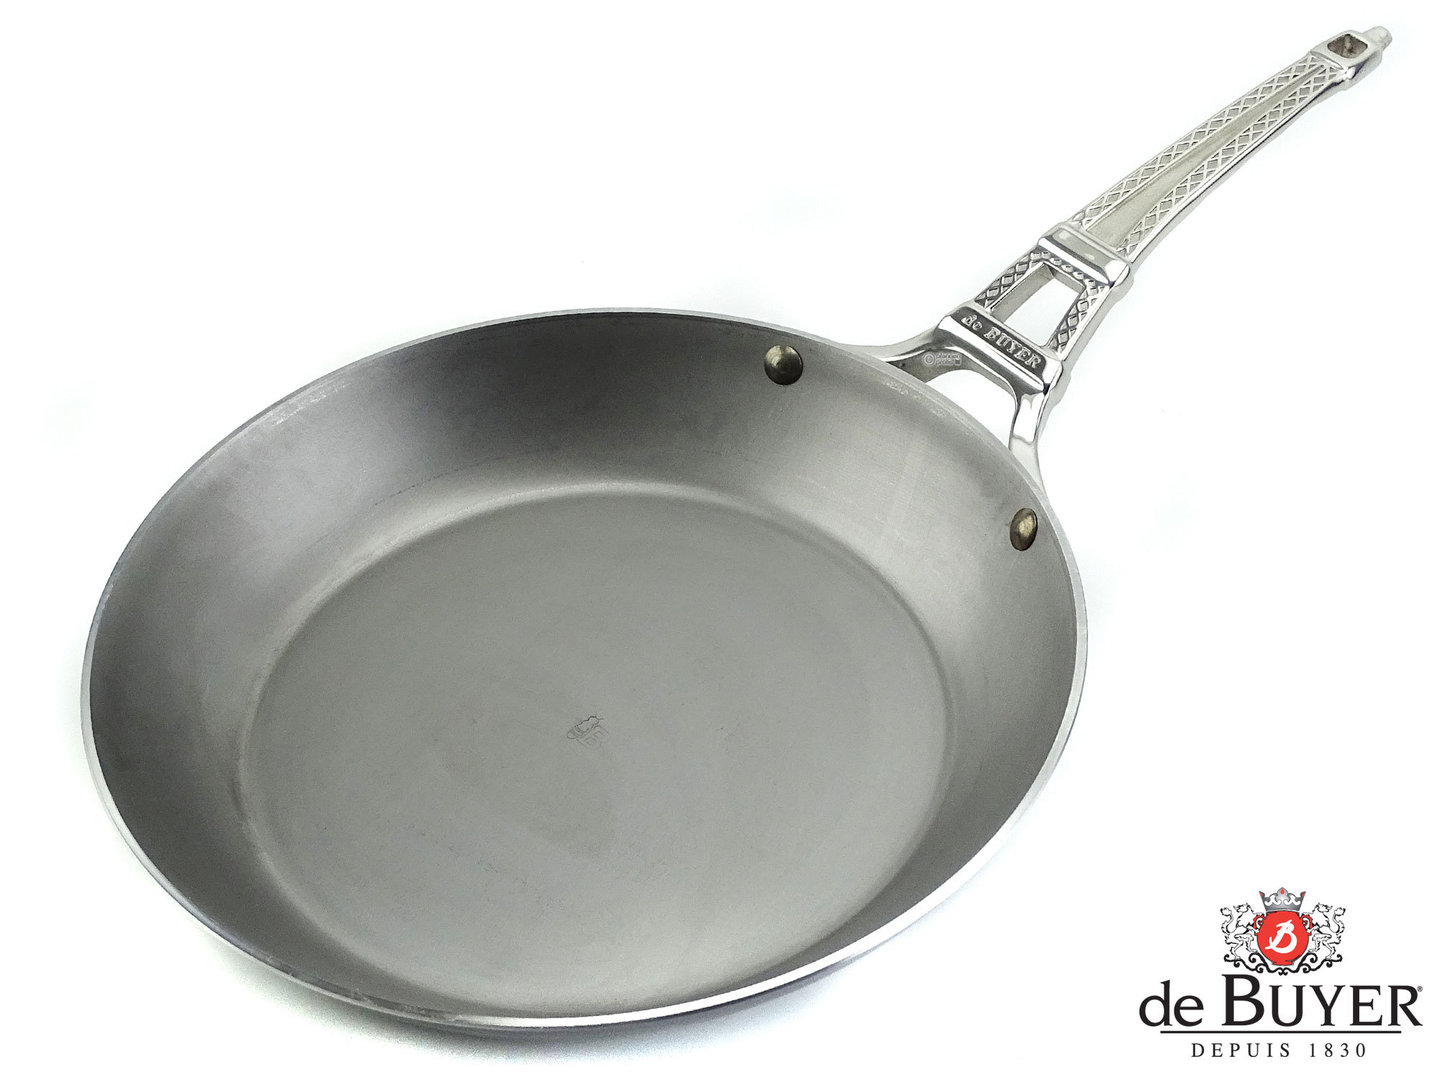 DE BUYER iron pan FRENCH COLLECTION MINERAL B 28 cm